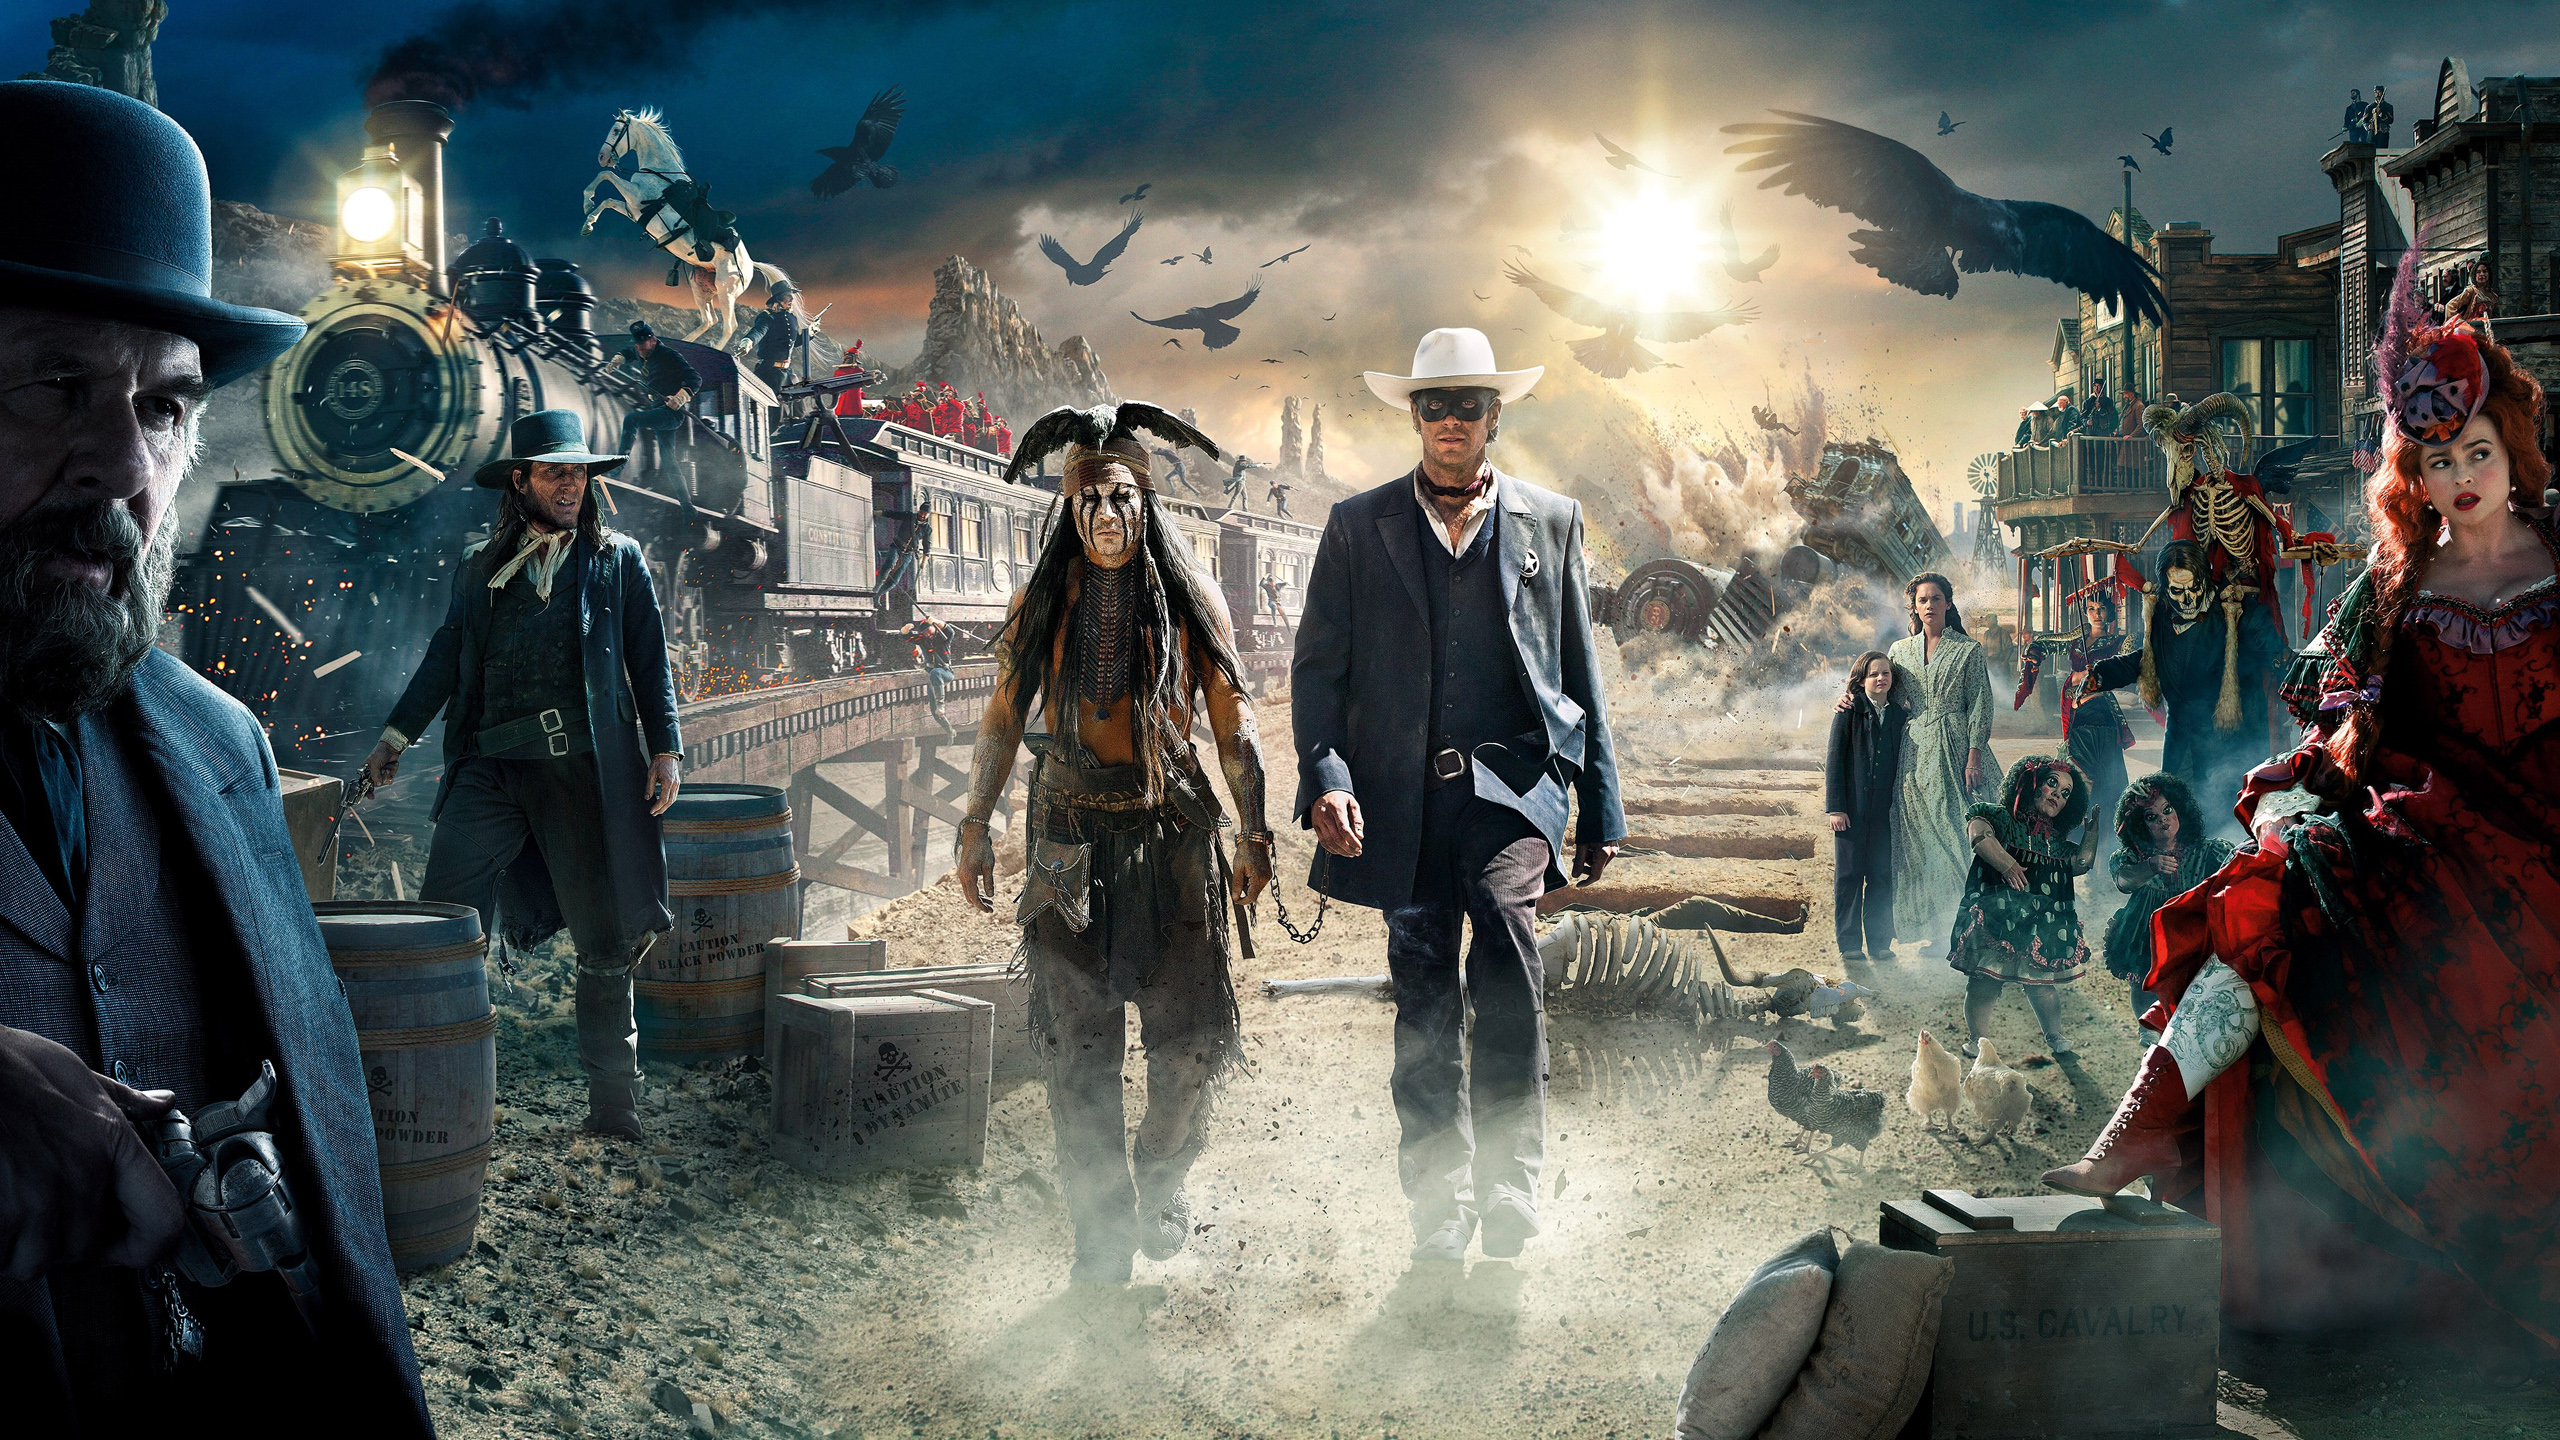 The Lone Ranger - Wallpaper, High Definition, High Quality, Widescreen